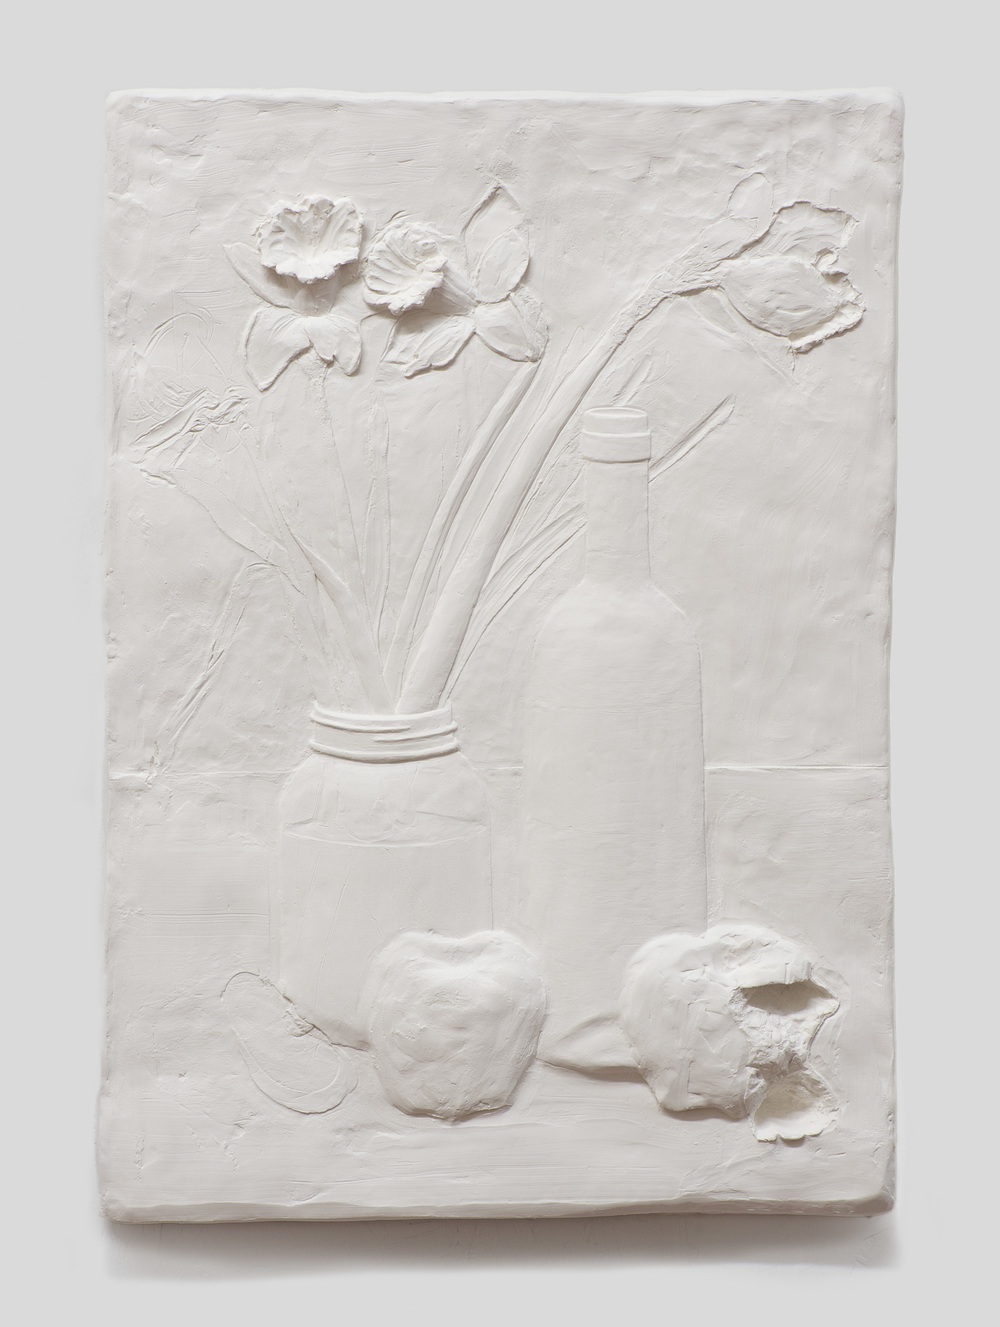 Anthony Miserendino  Still-Life , 2015 Gypsum cement, fiberglass cloth, and wood 21 x 15 x 1 1/2 inches